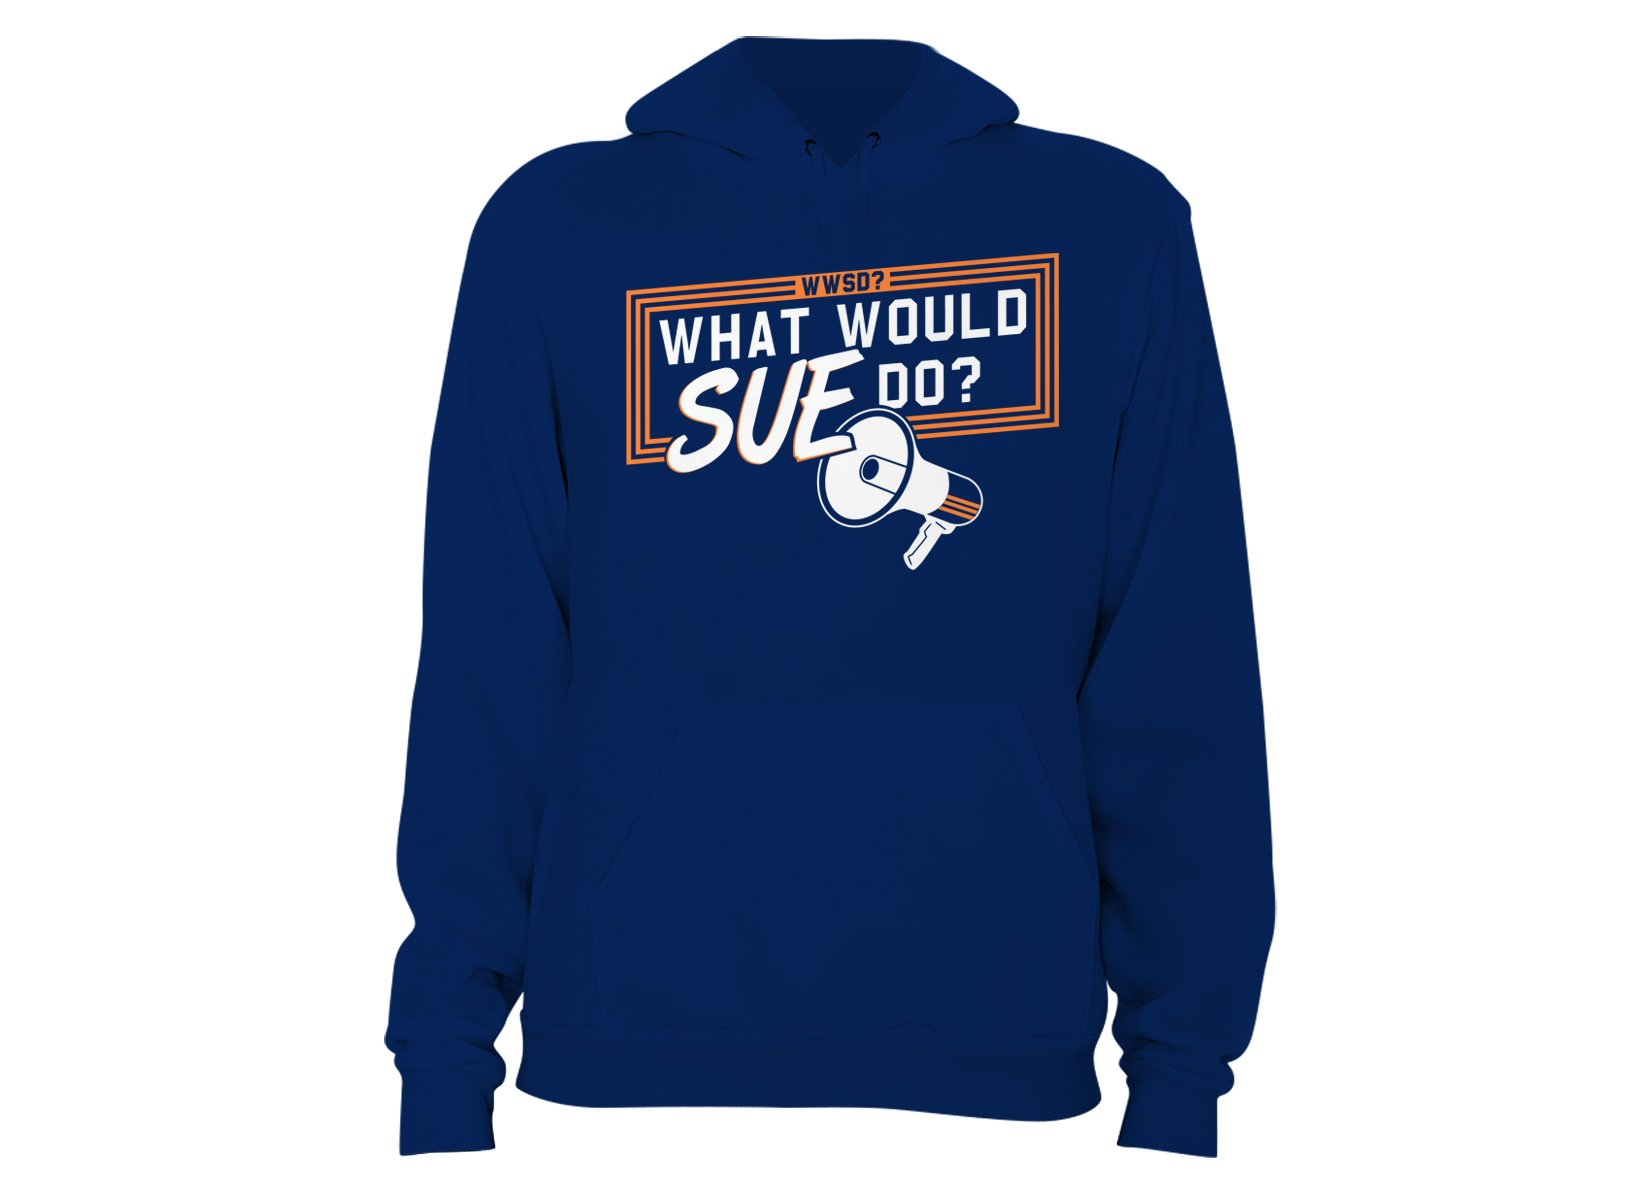 What Would Sue Do? on Hoodie